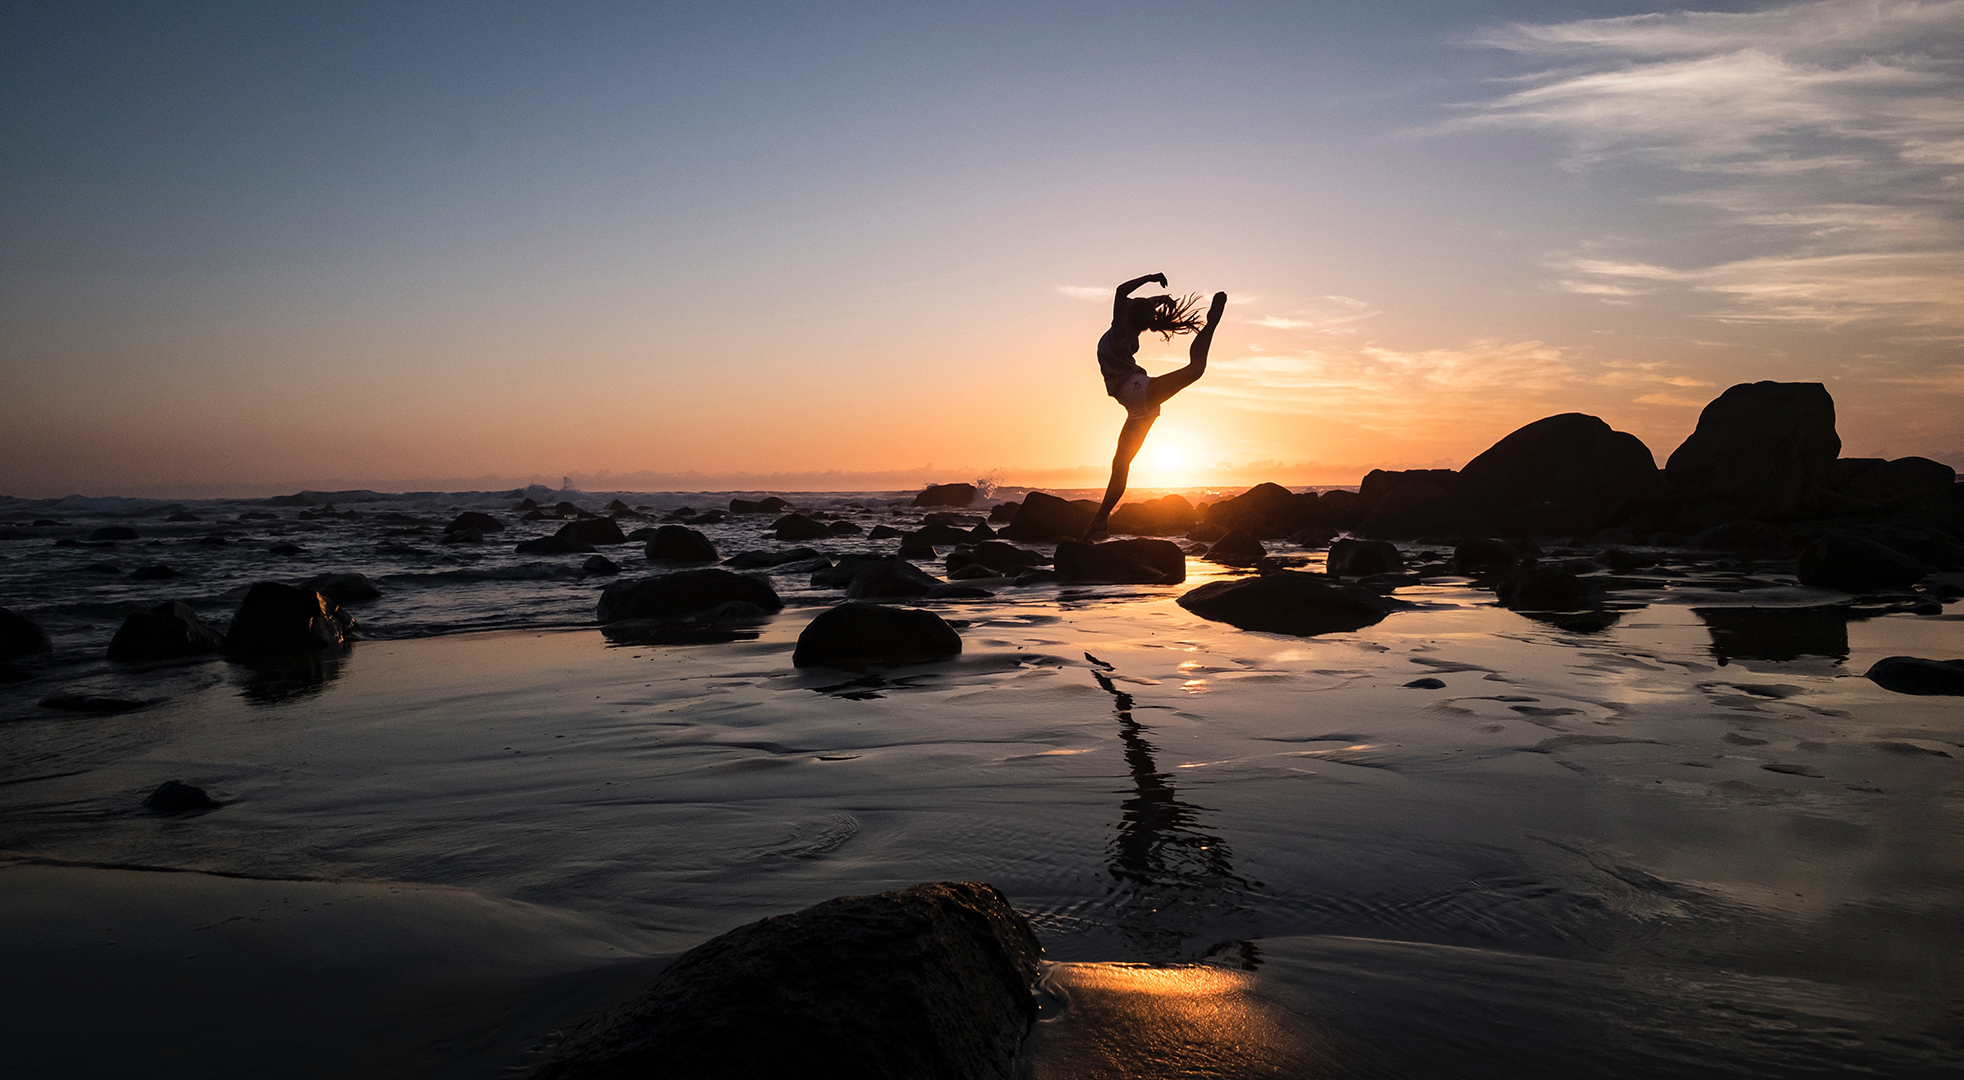 TelMD wellness user depicting balanced life and enjoying the sunset